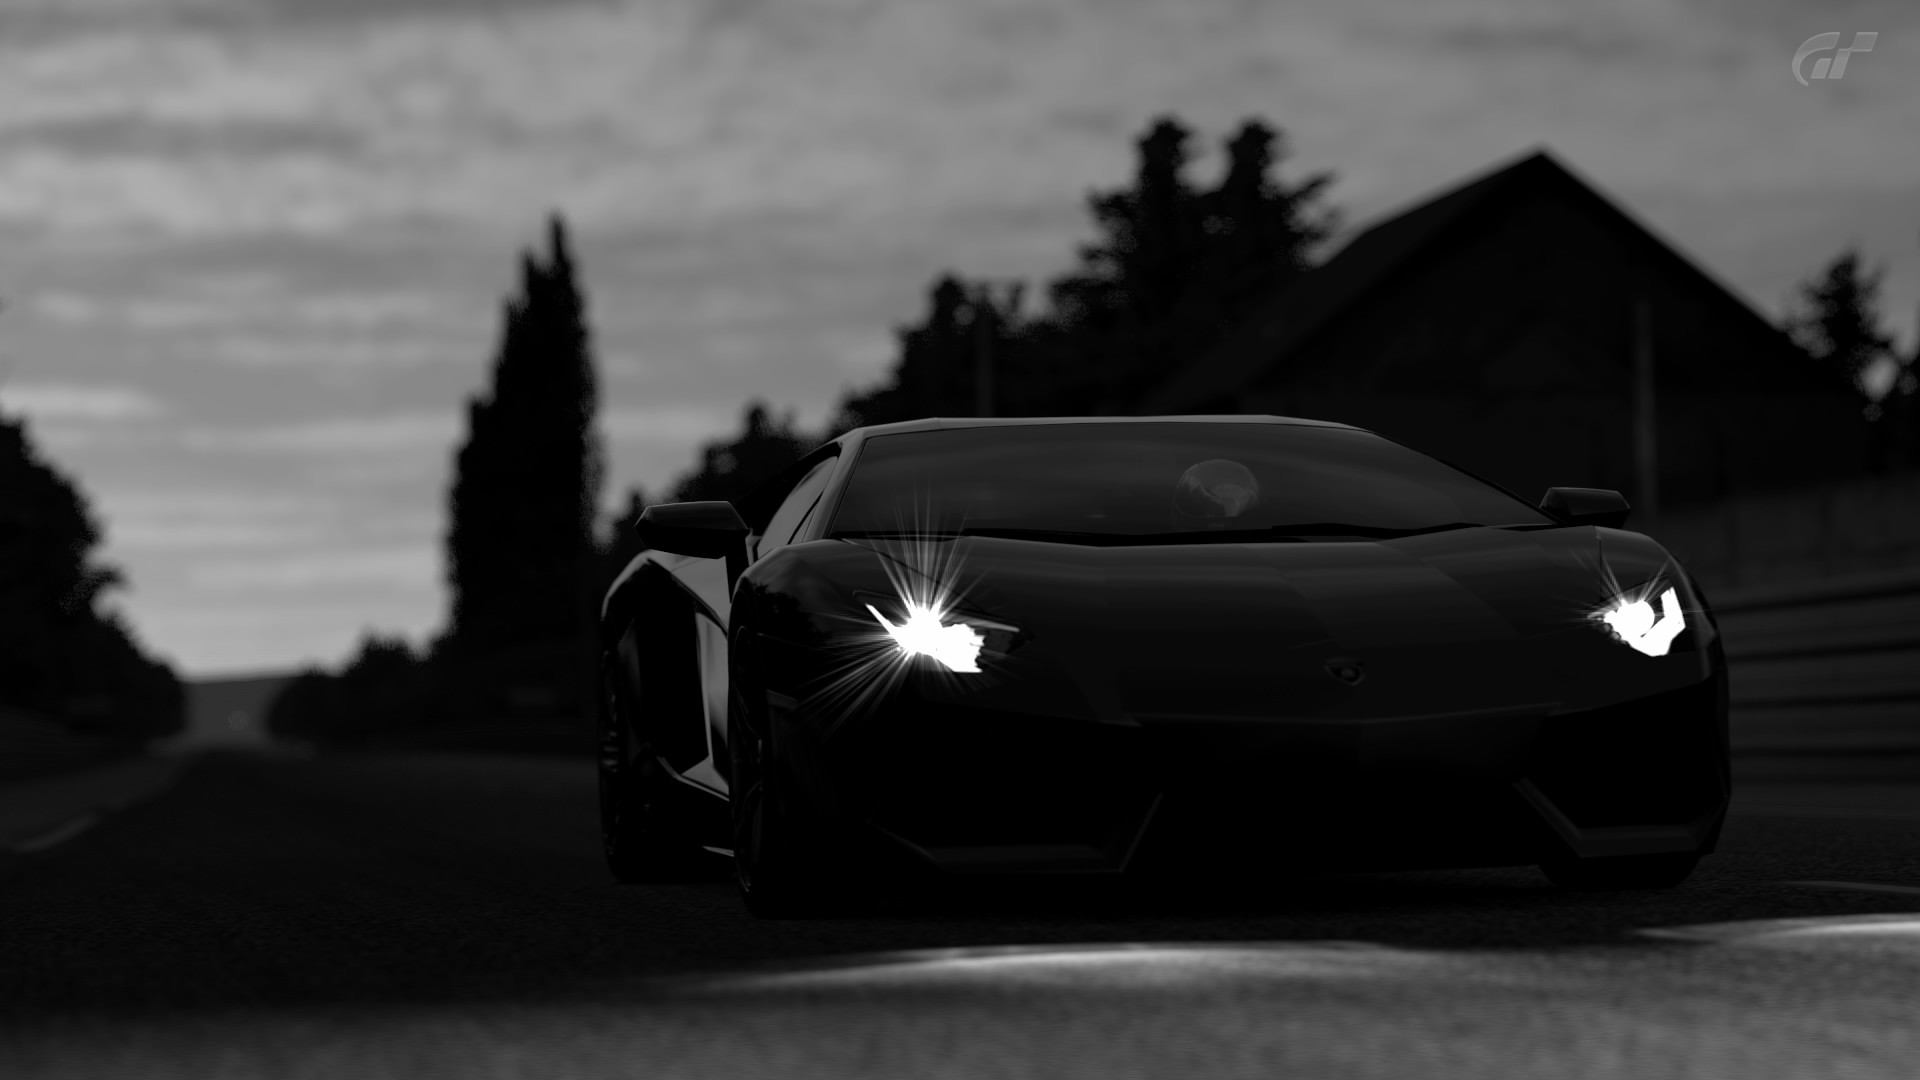 1920x1080 Dark Black Lamborghini Car Wallpaper Hd Black Car Wallpaper 4k 1920x1080 Download Hd Wallpaper Wallpapertip